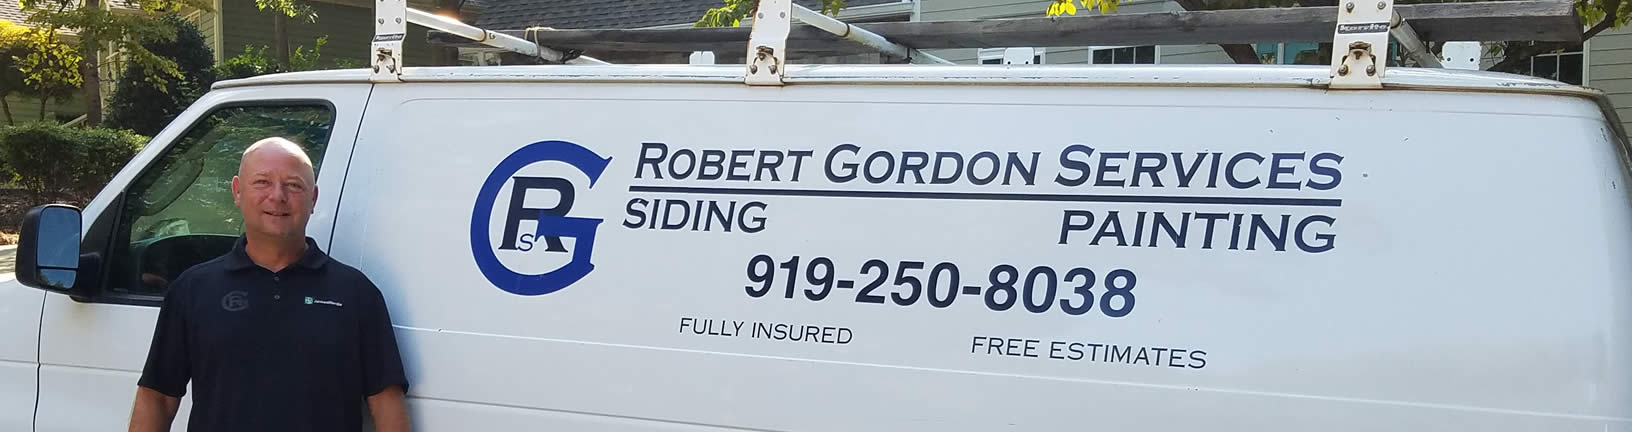 Robert Gordon Services - Serving Raleigh, Durham, Cary, and Morrisville, NC